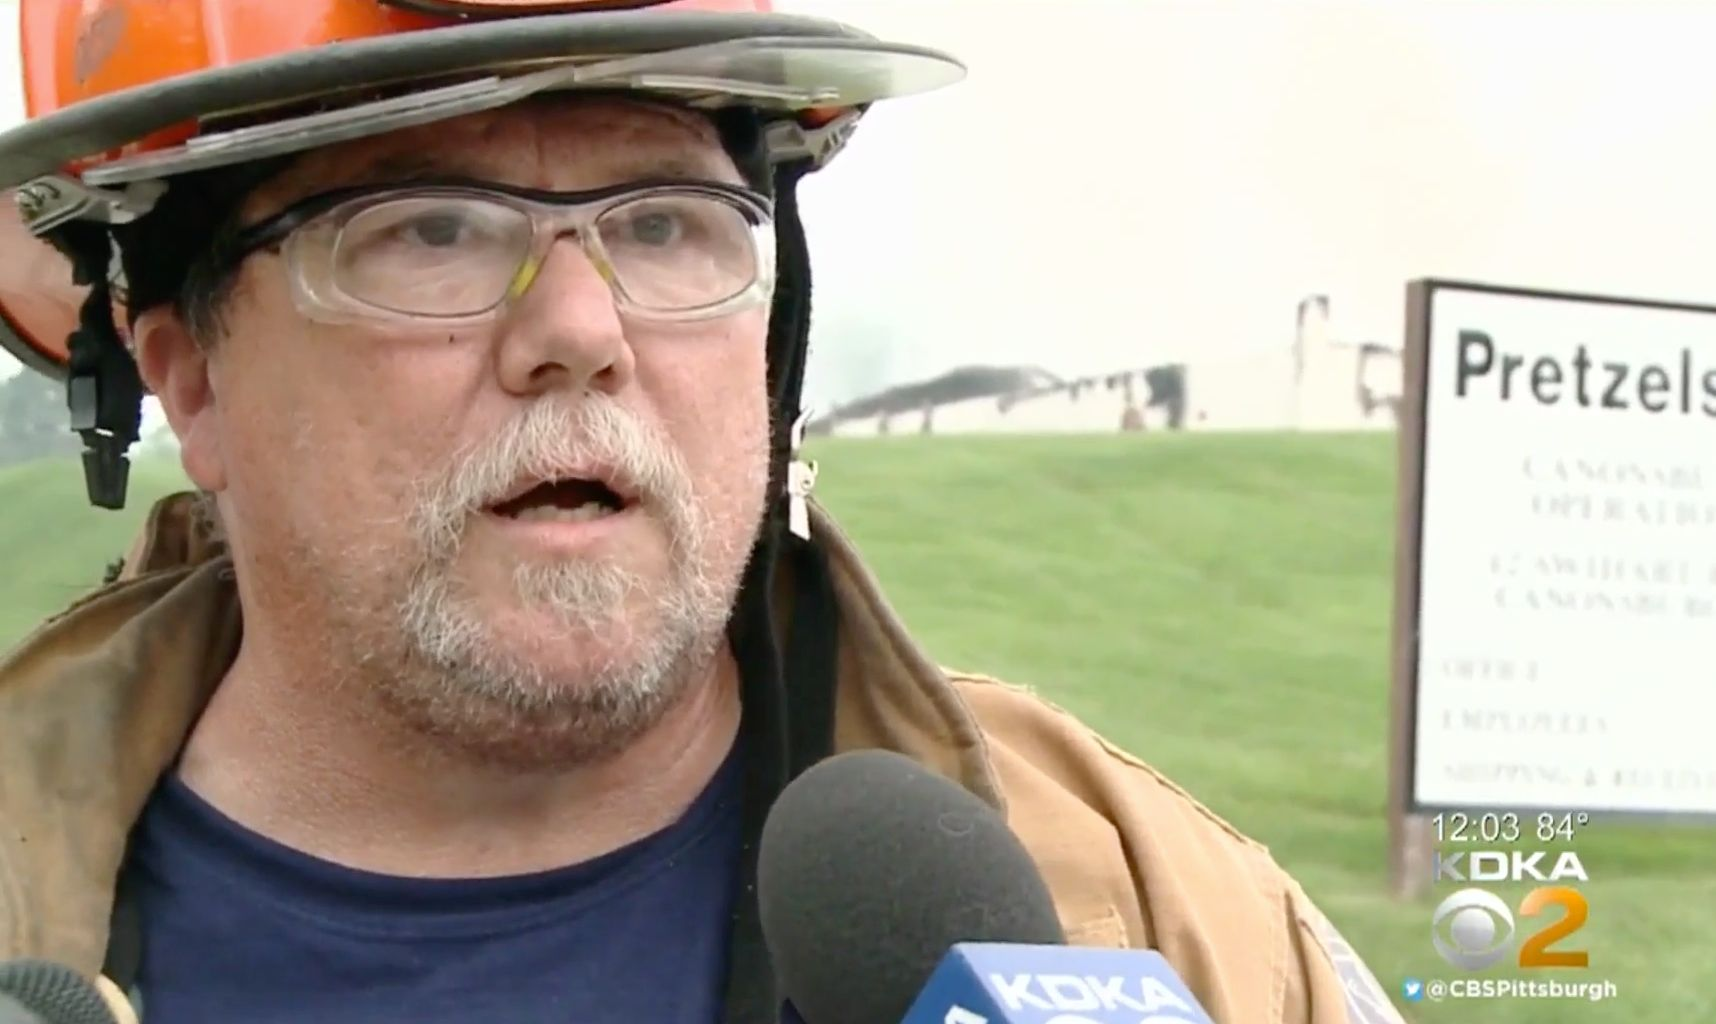 Volunteer Fire Chief Paul Smith of the Muse Fire Department, shown during an earlier interview, apologized and then resigned&